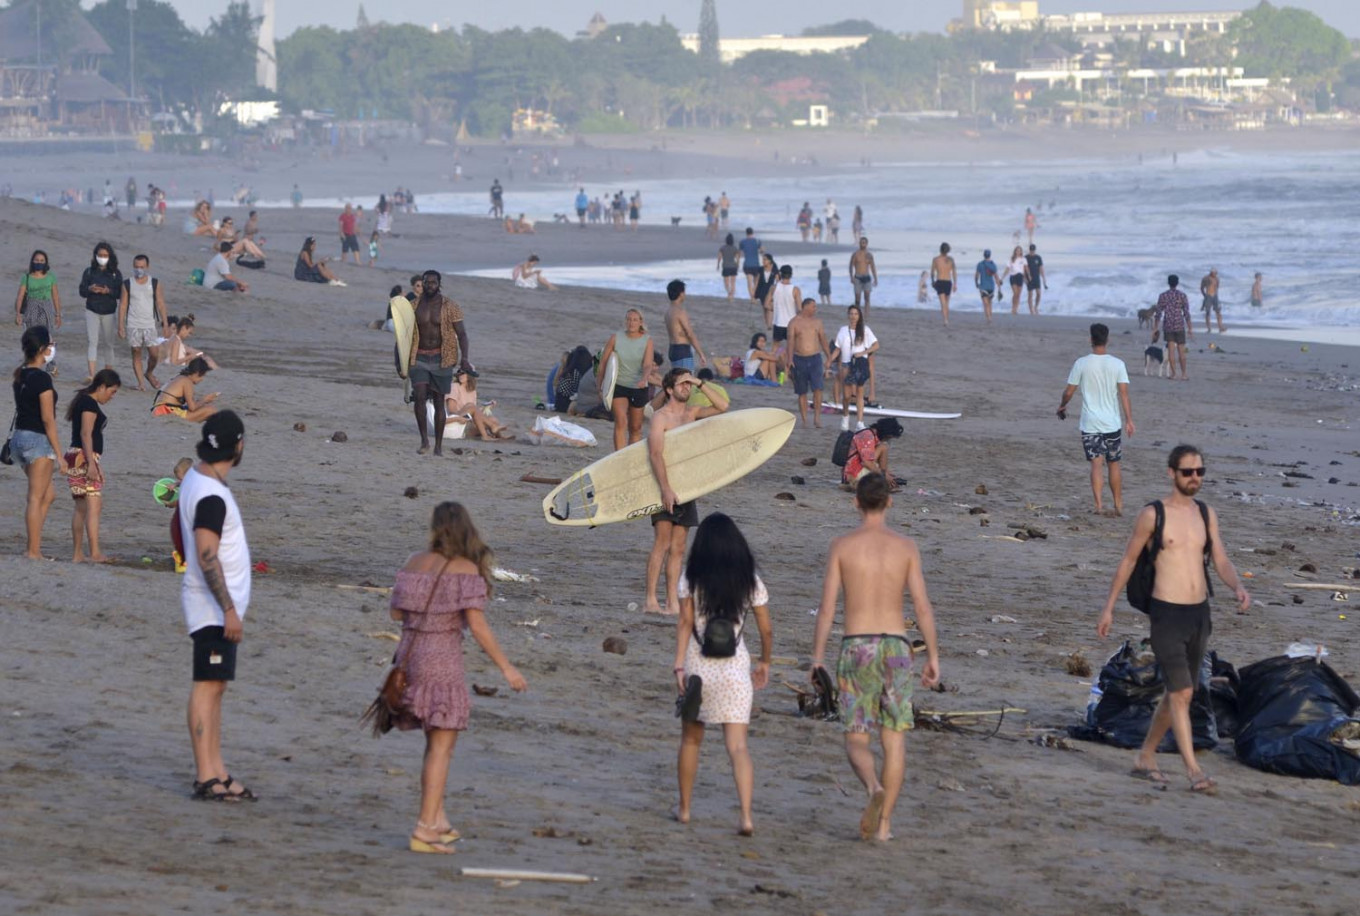 Government won't open Bali yet: COVID-19 task force